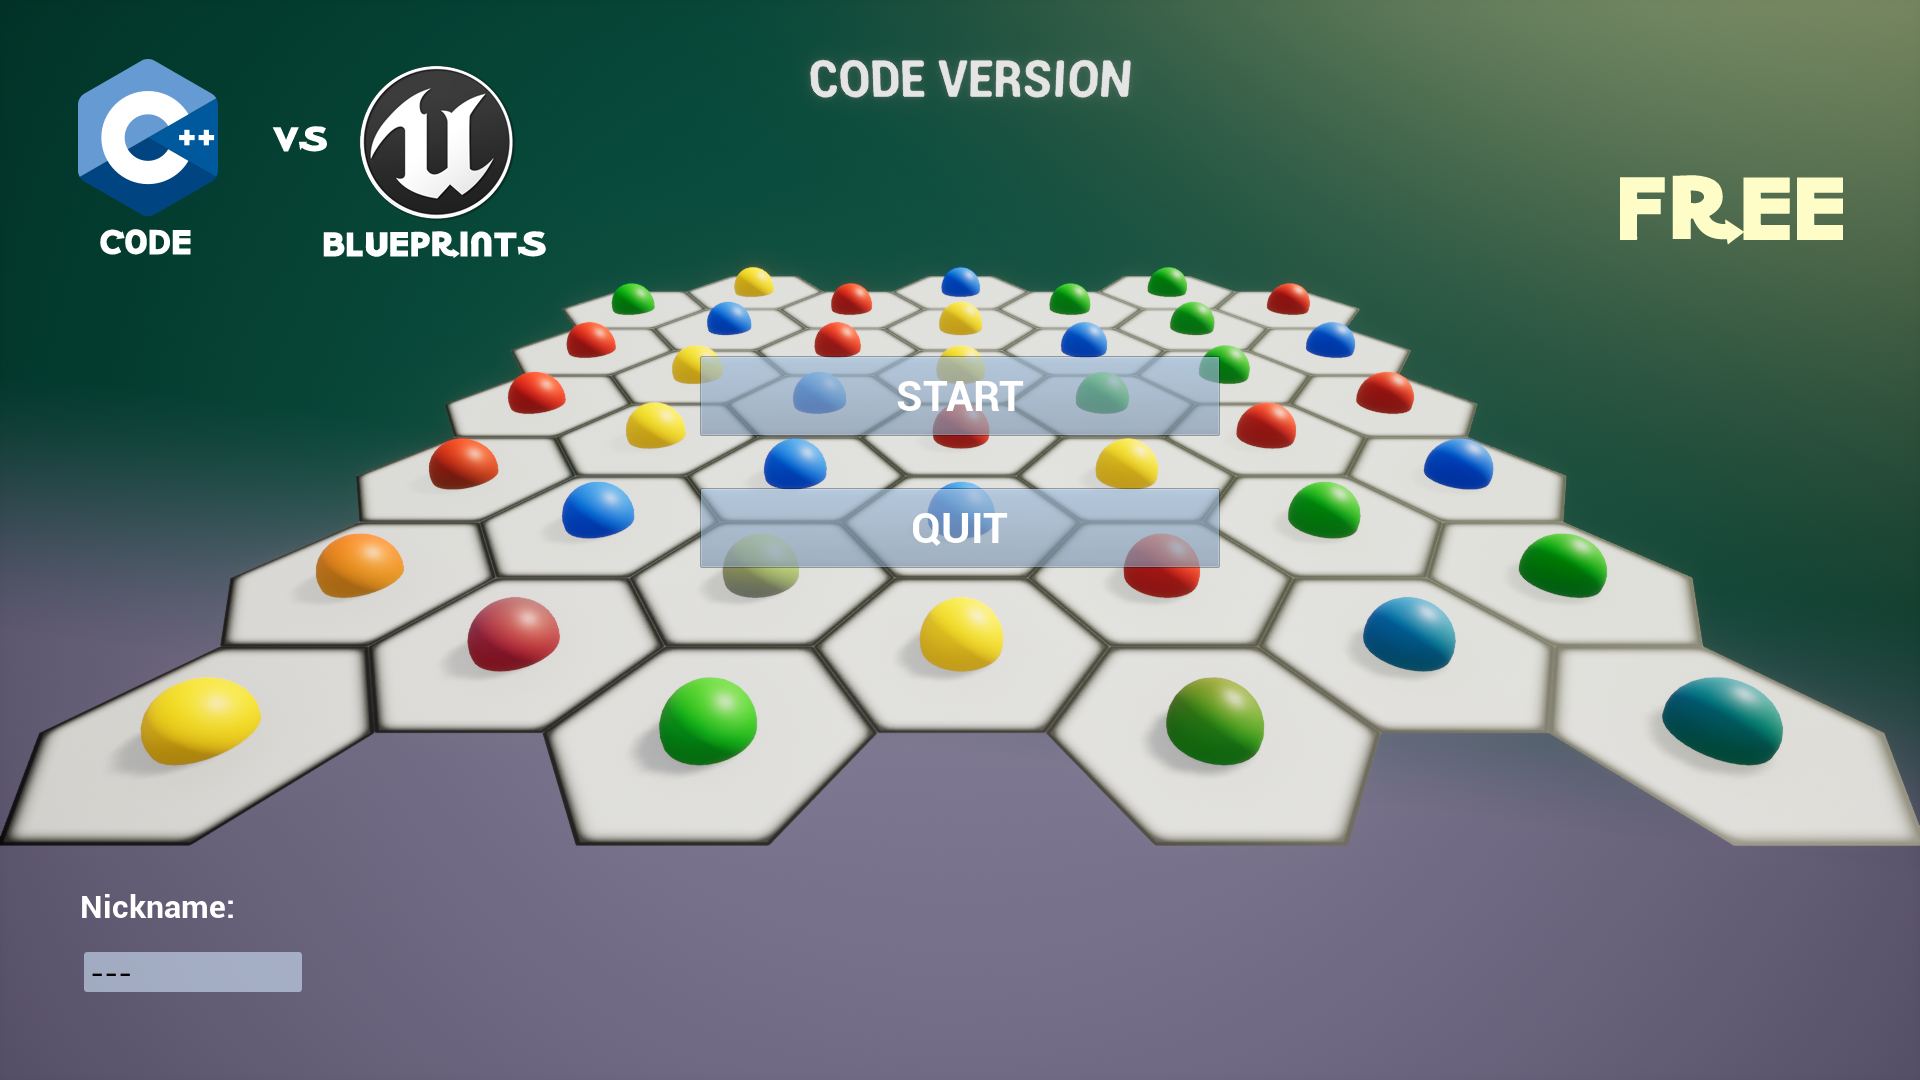 HexBlocks – Code vs Blueprint